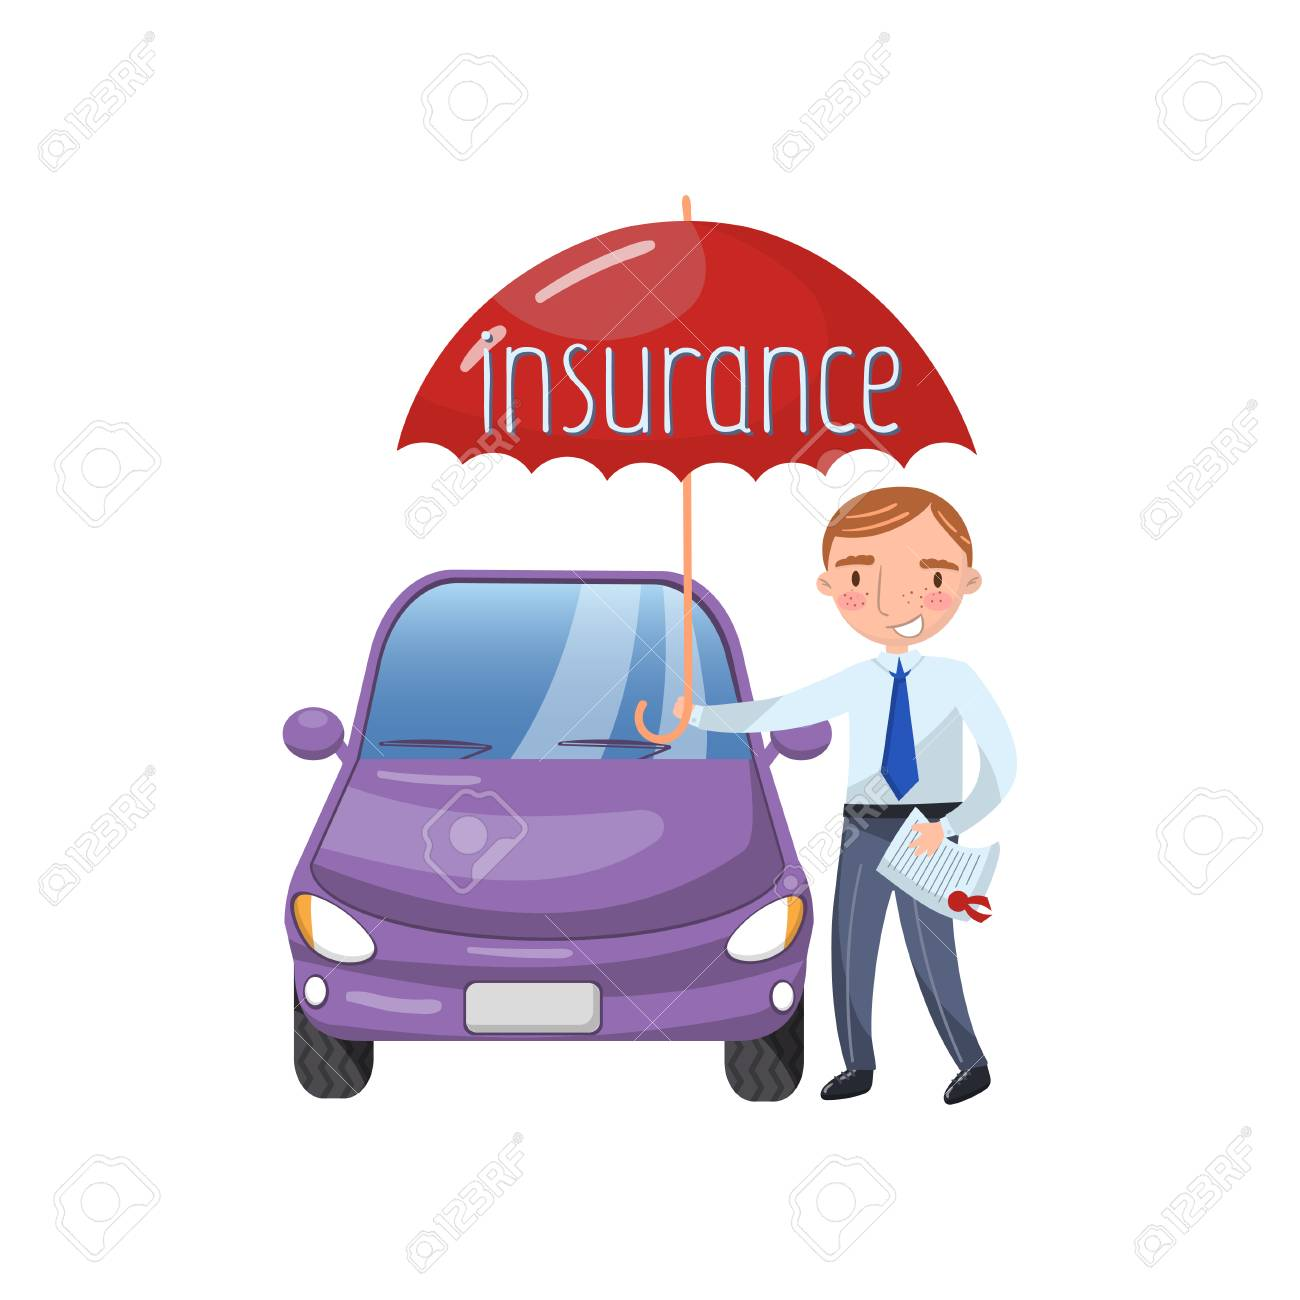 Insurance Agent Standing With Umbrella Protecting Car Auto Insurance Royalty Free Cliparts Vectors And Stock Illustration Image 94217589